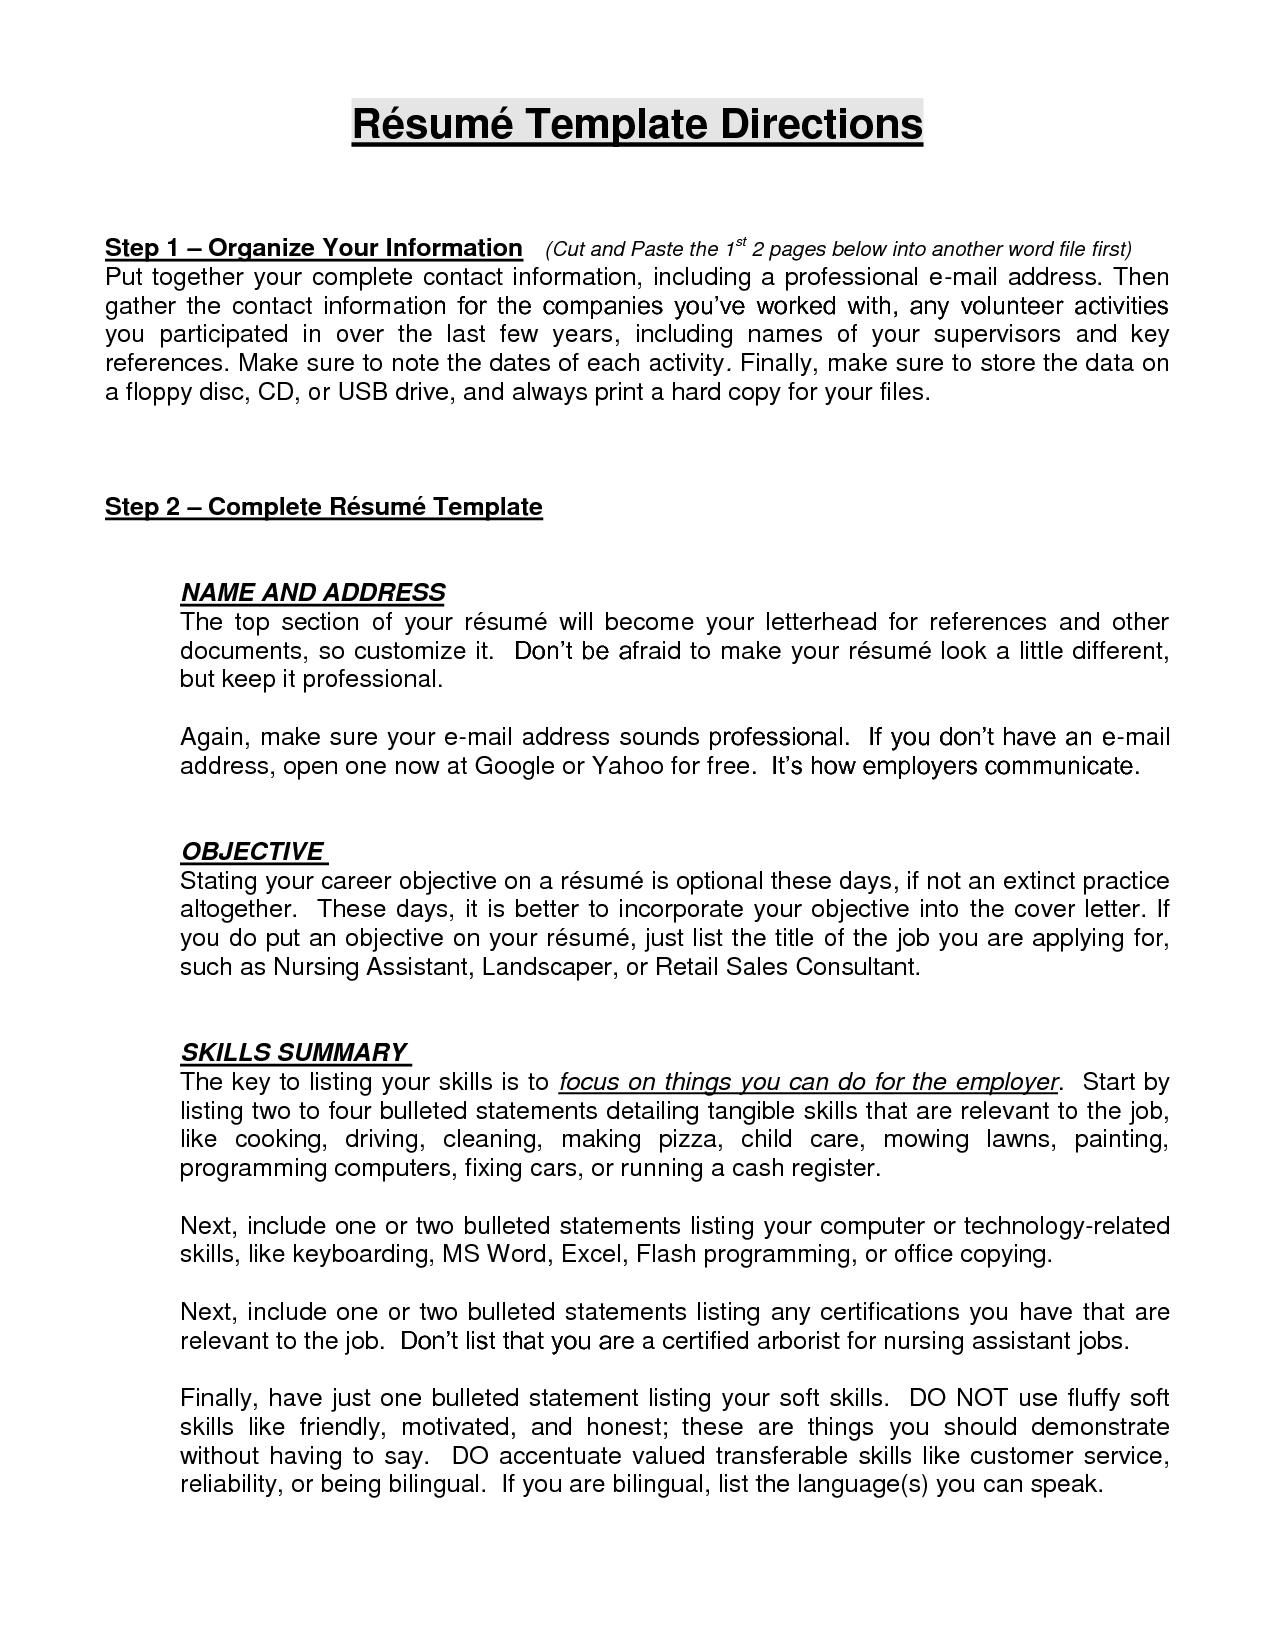 Resume Objective Statements Ideas - http://www.jobresume.website ...